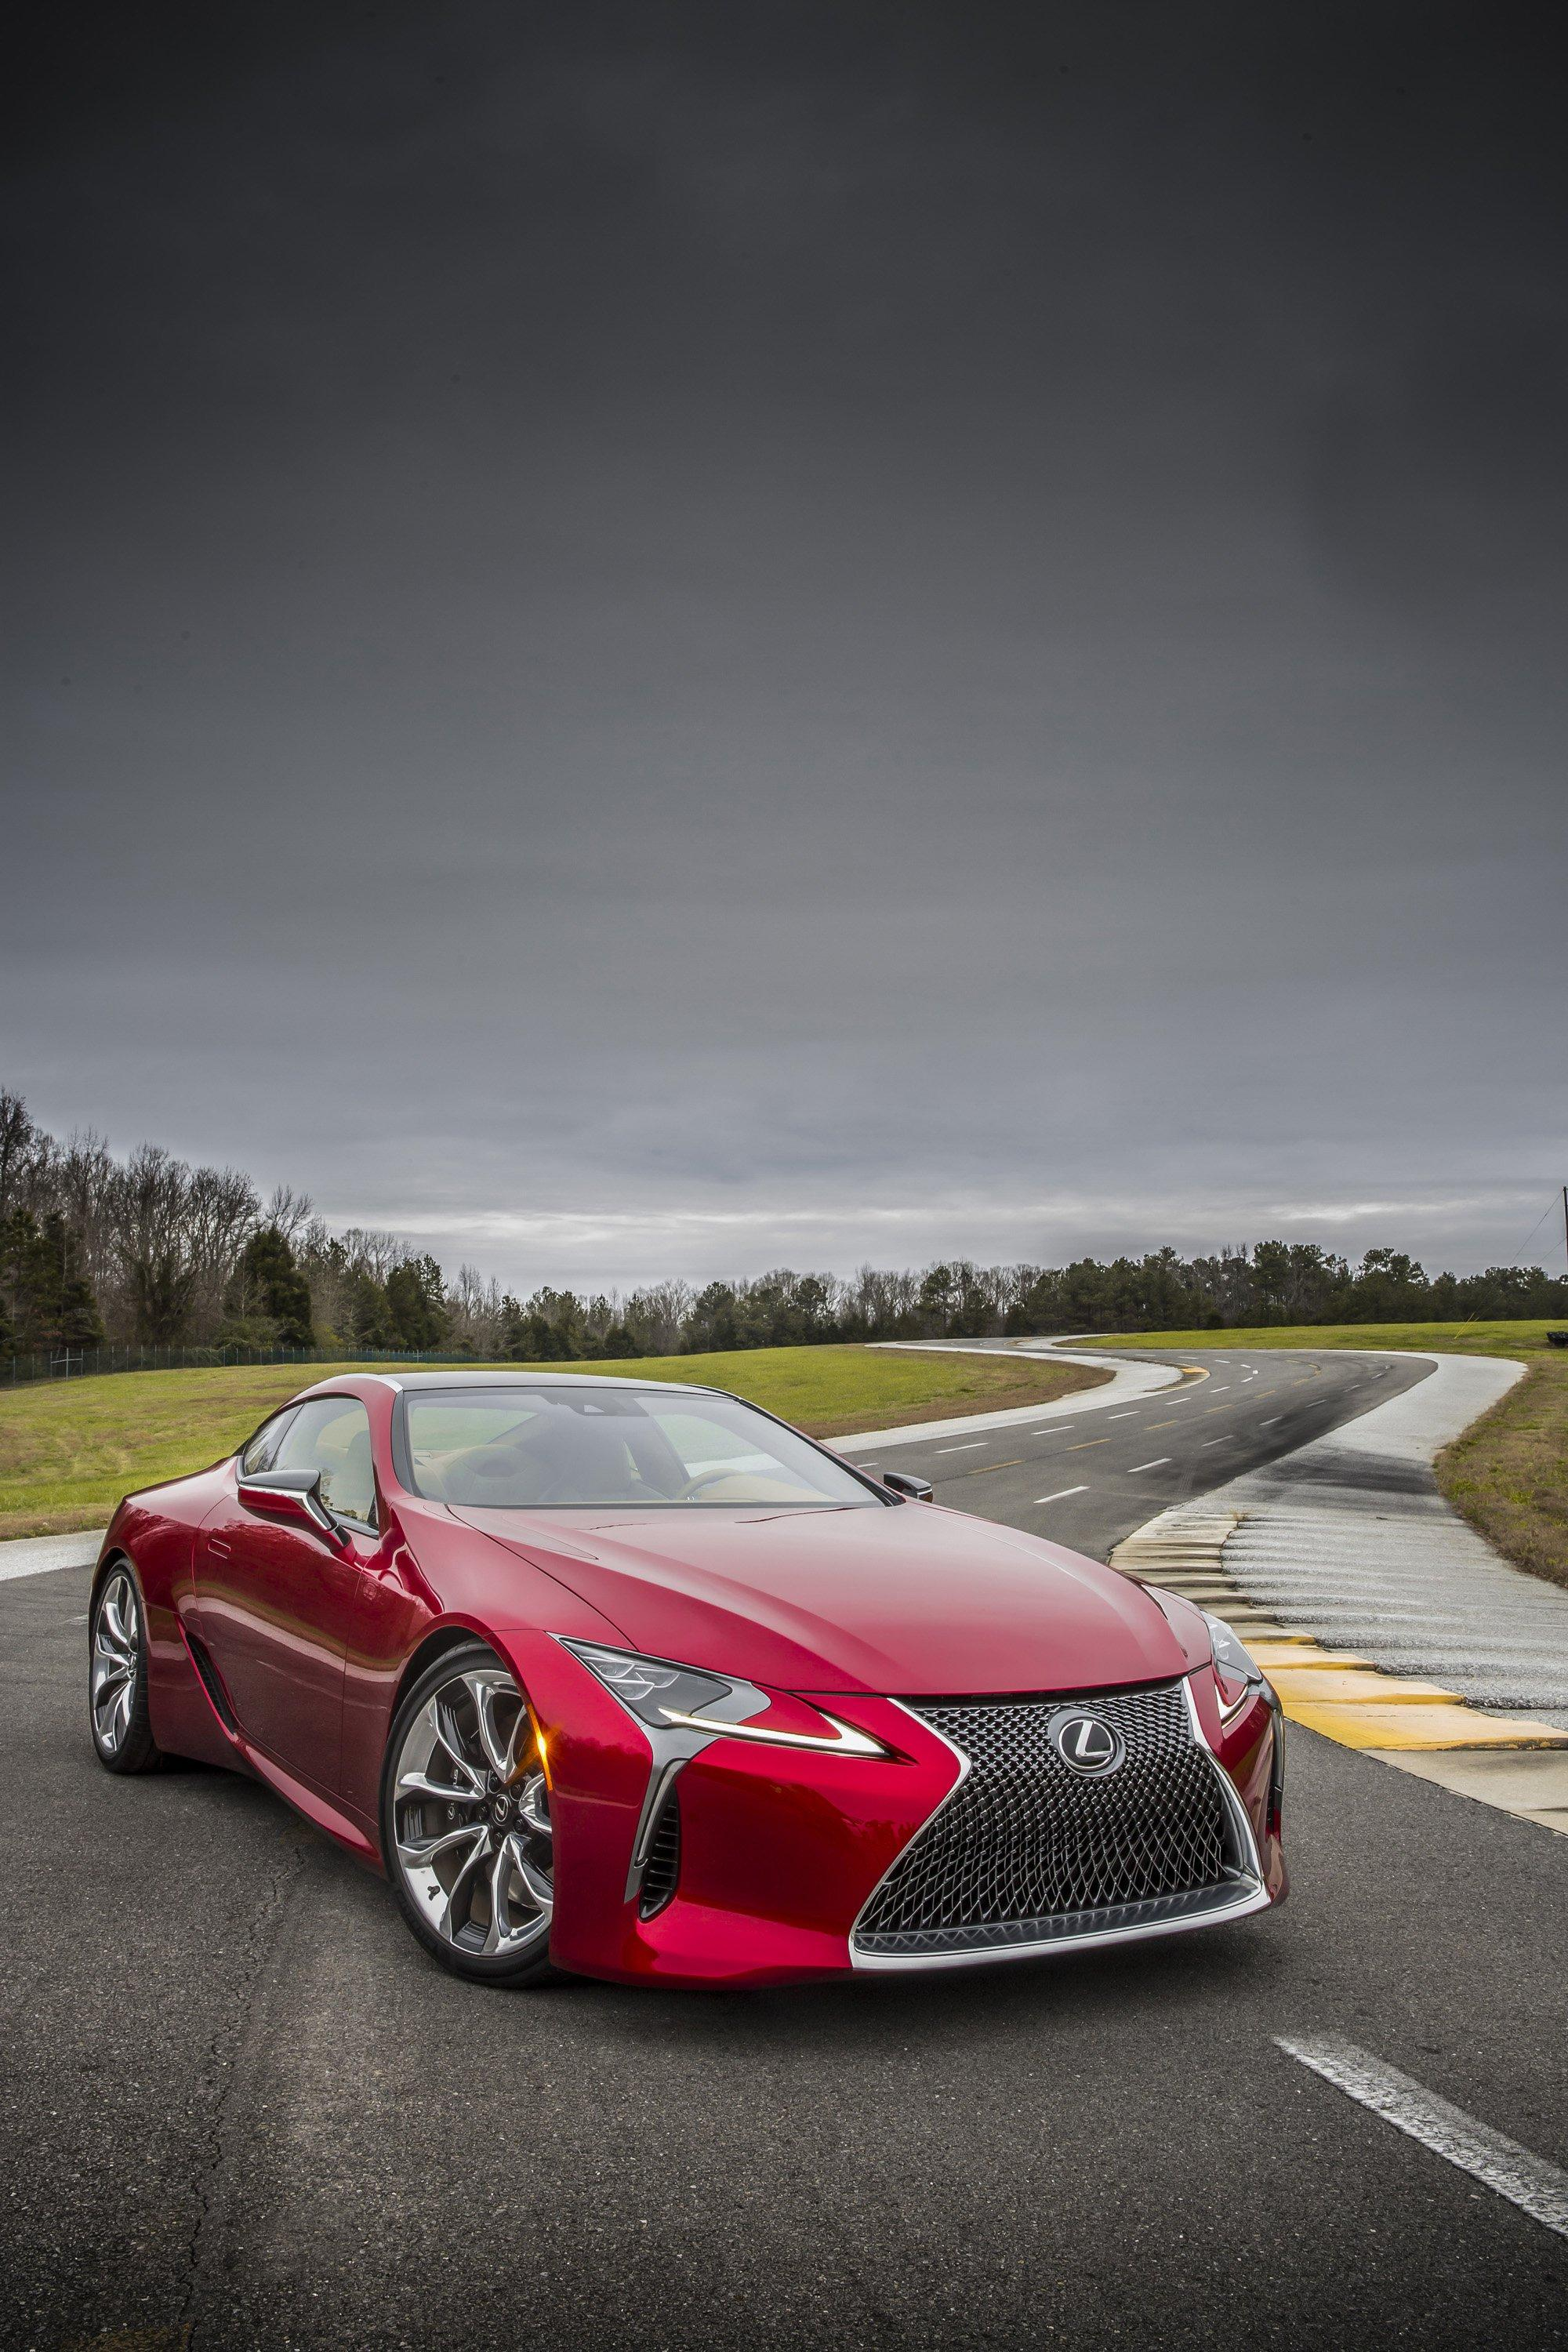 Wallpaper Of The Day: 2018 Lexus LC500 | Top Speed